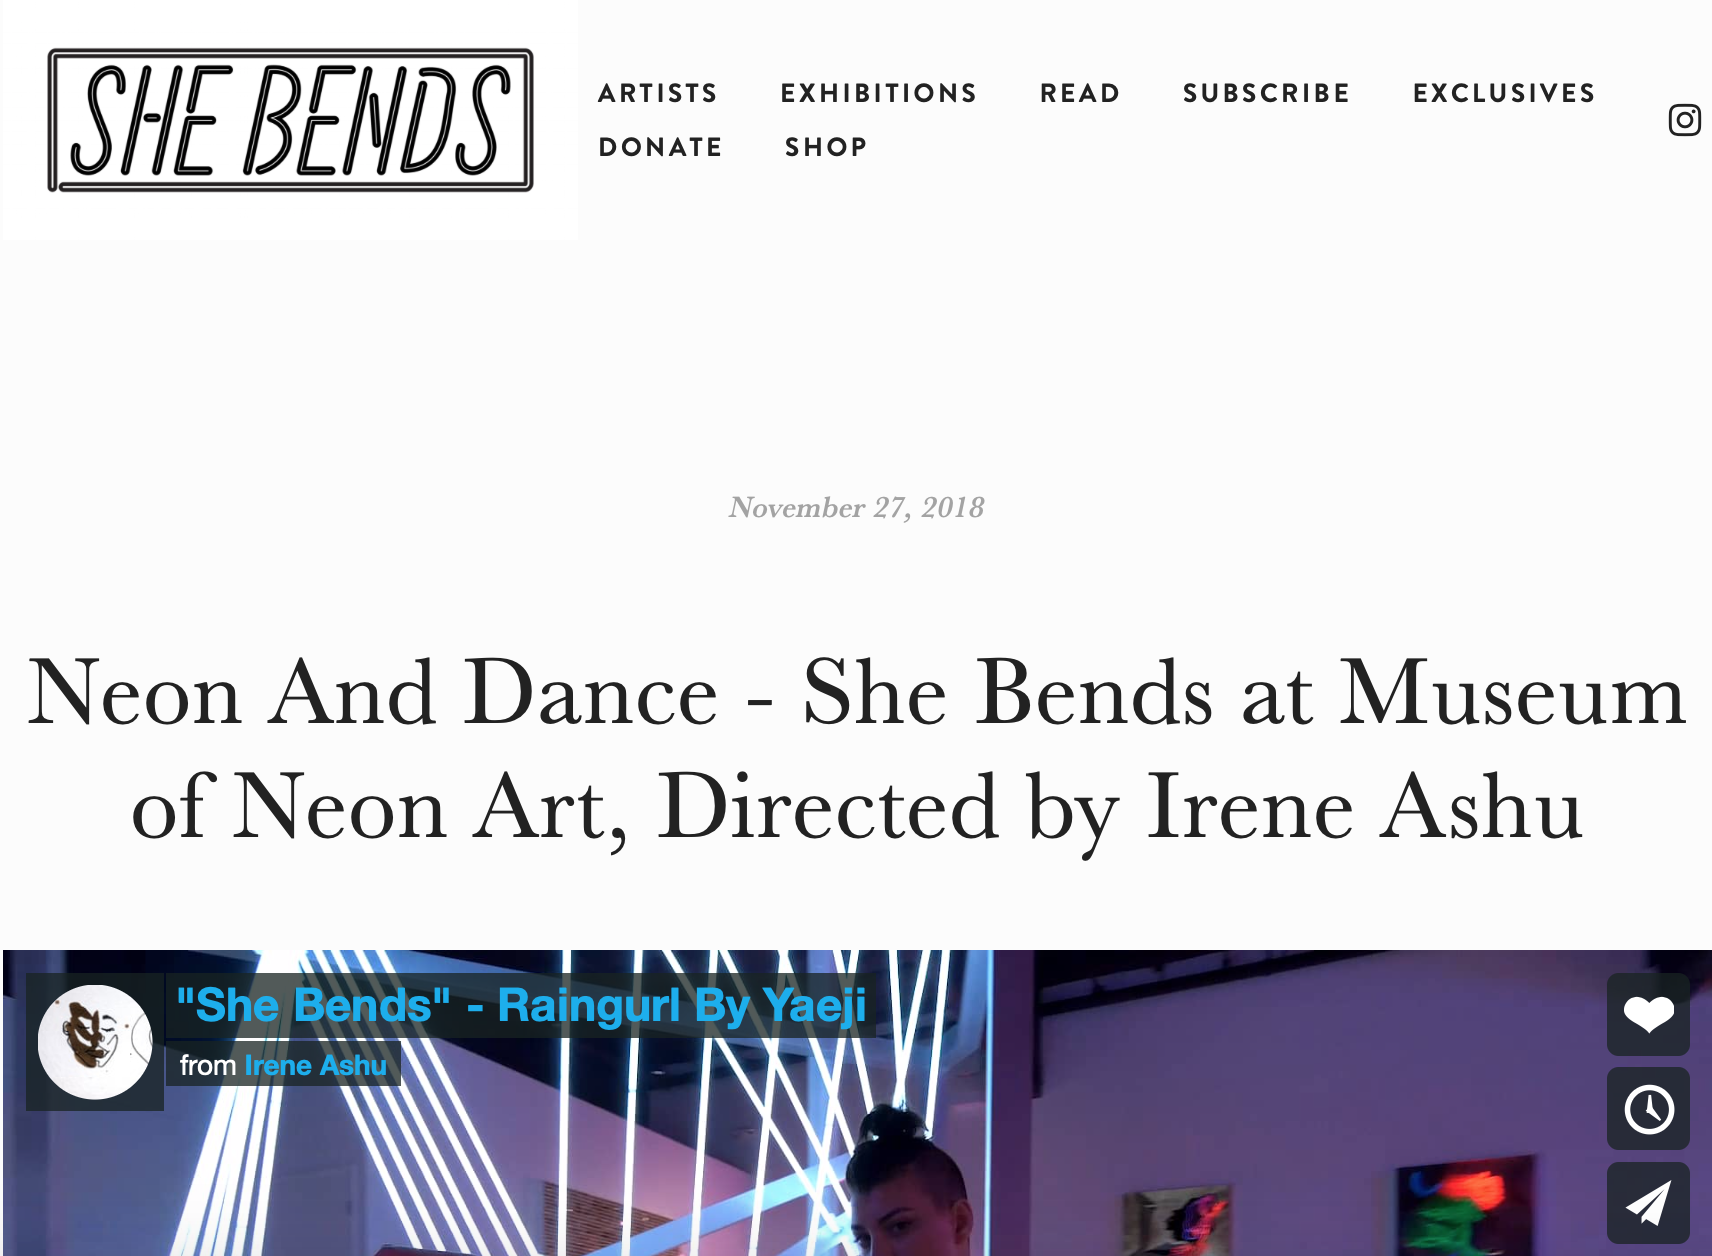 https://www.shebends.com/blog-1/2018/11/27/neon-and-dance-she-bends-by-irene-ashu